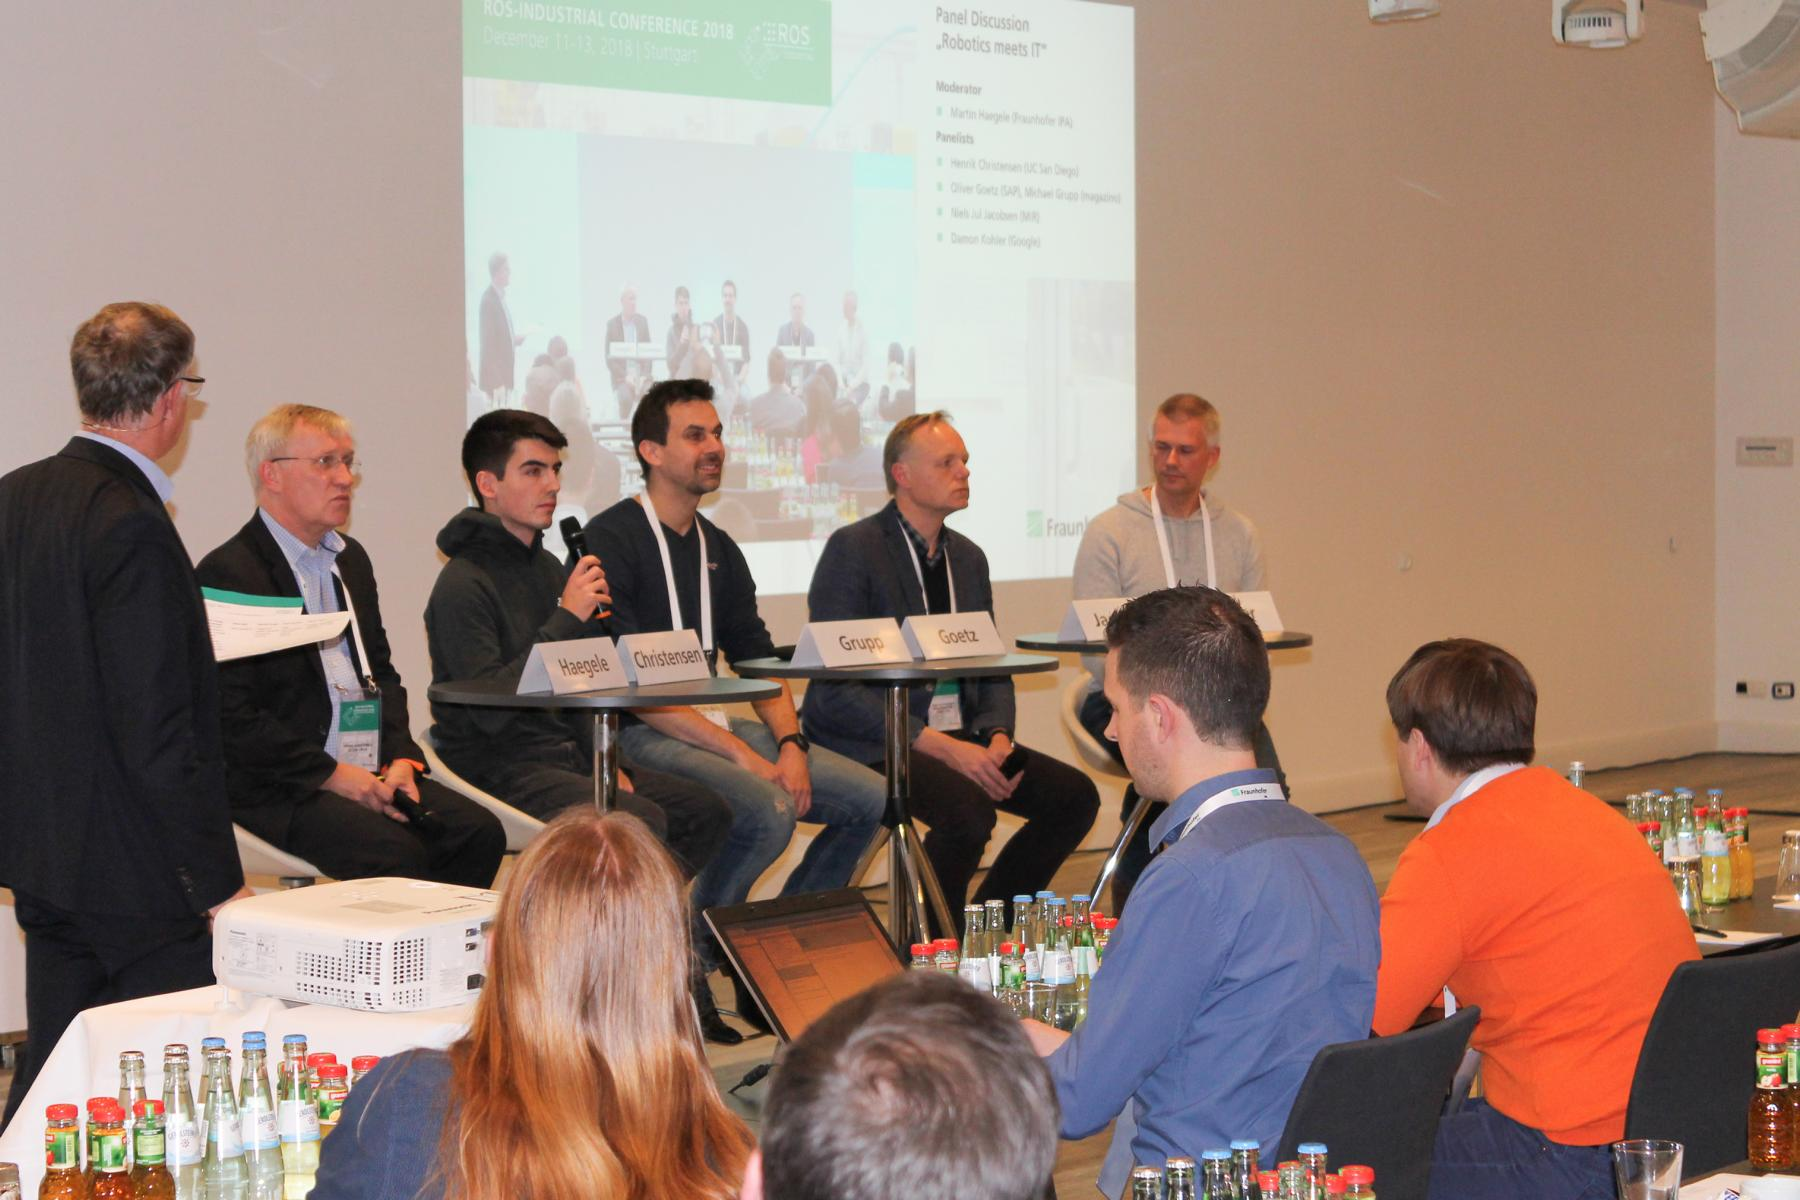 Martin Hägele (Fraunhofer IPA) moderates a panel discussion with Henrik Christensen (UC San Diego), Oliver Goetz (SAP), Michael Grupp (magazino), Niels Jul Jacobsen (MiR) and Damon Kohler (Google).